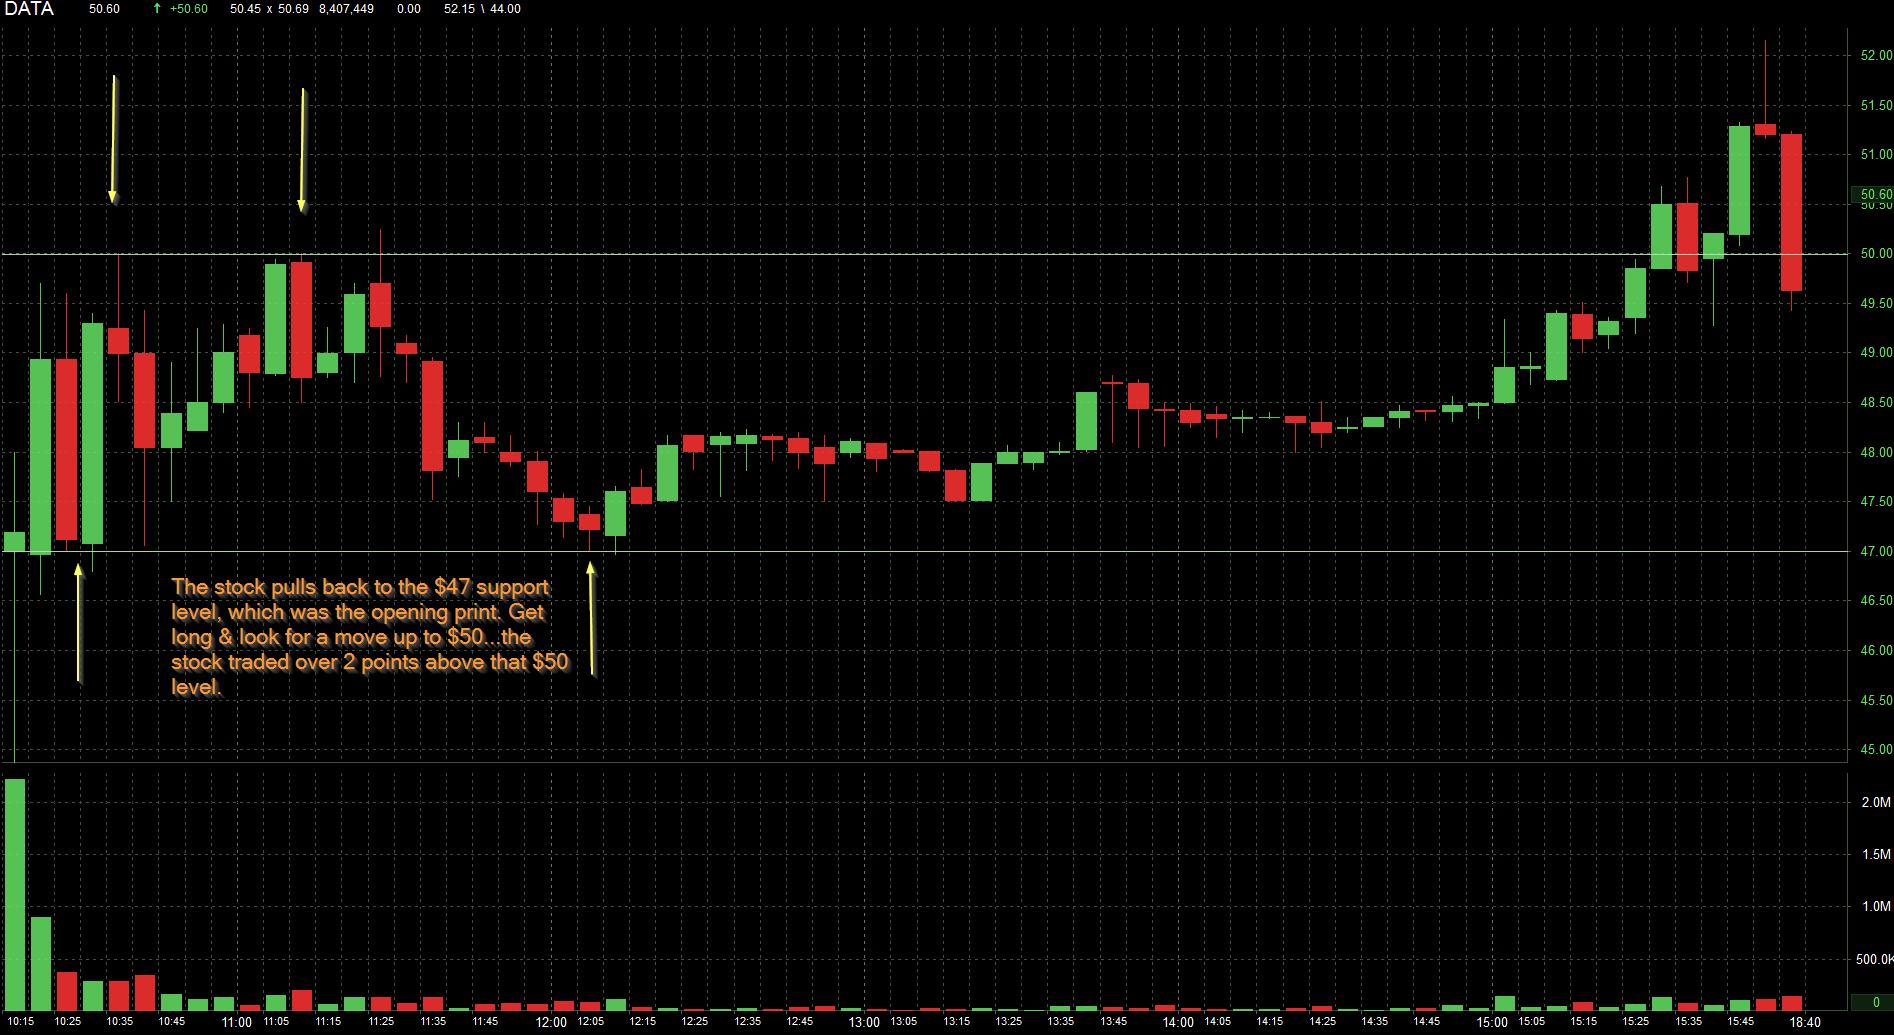 http://charts.stocktwits.net/production/original_13651236.png?1368831446